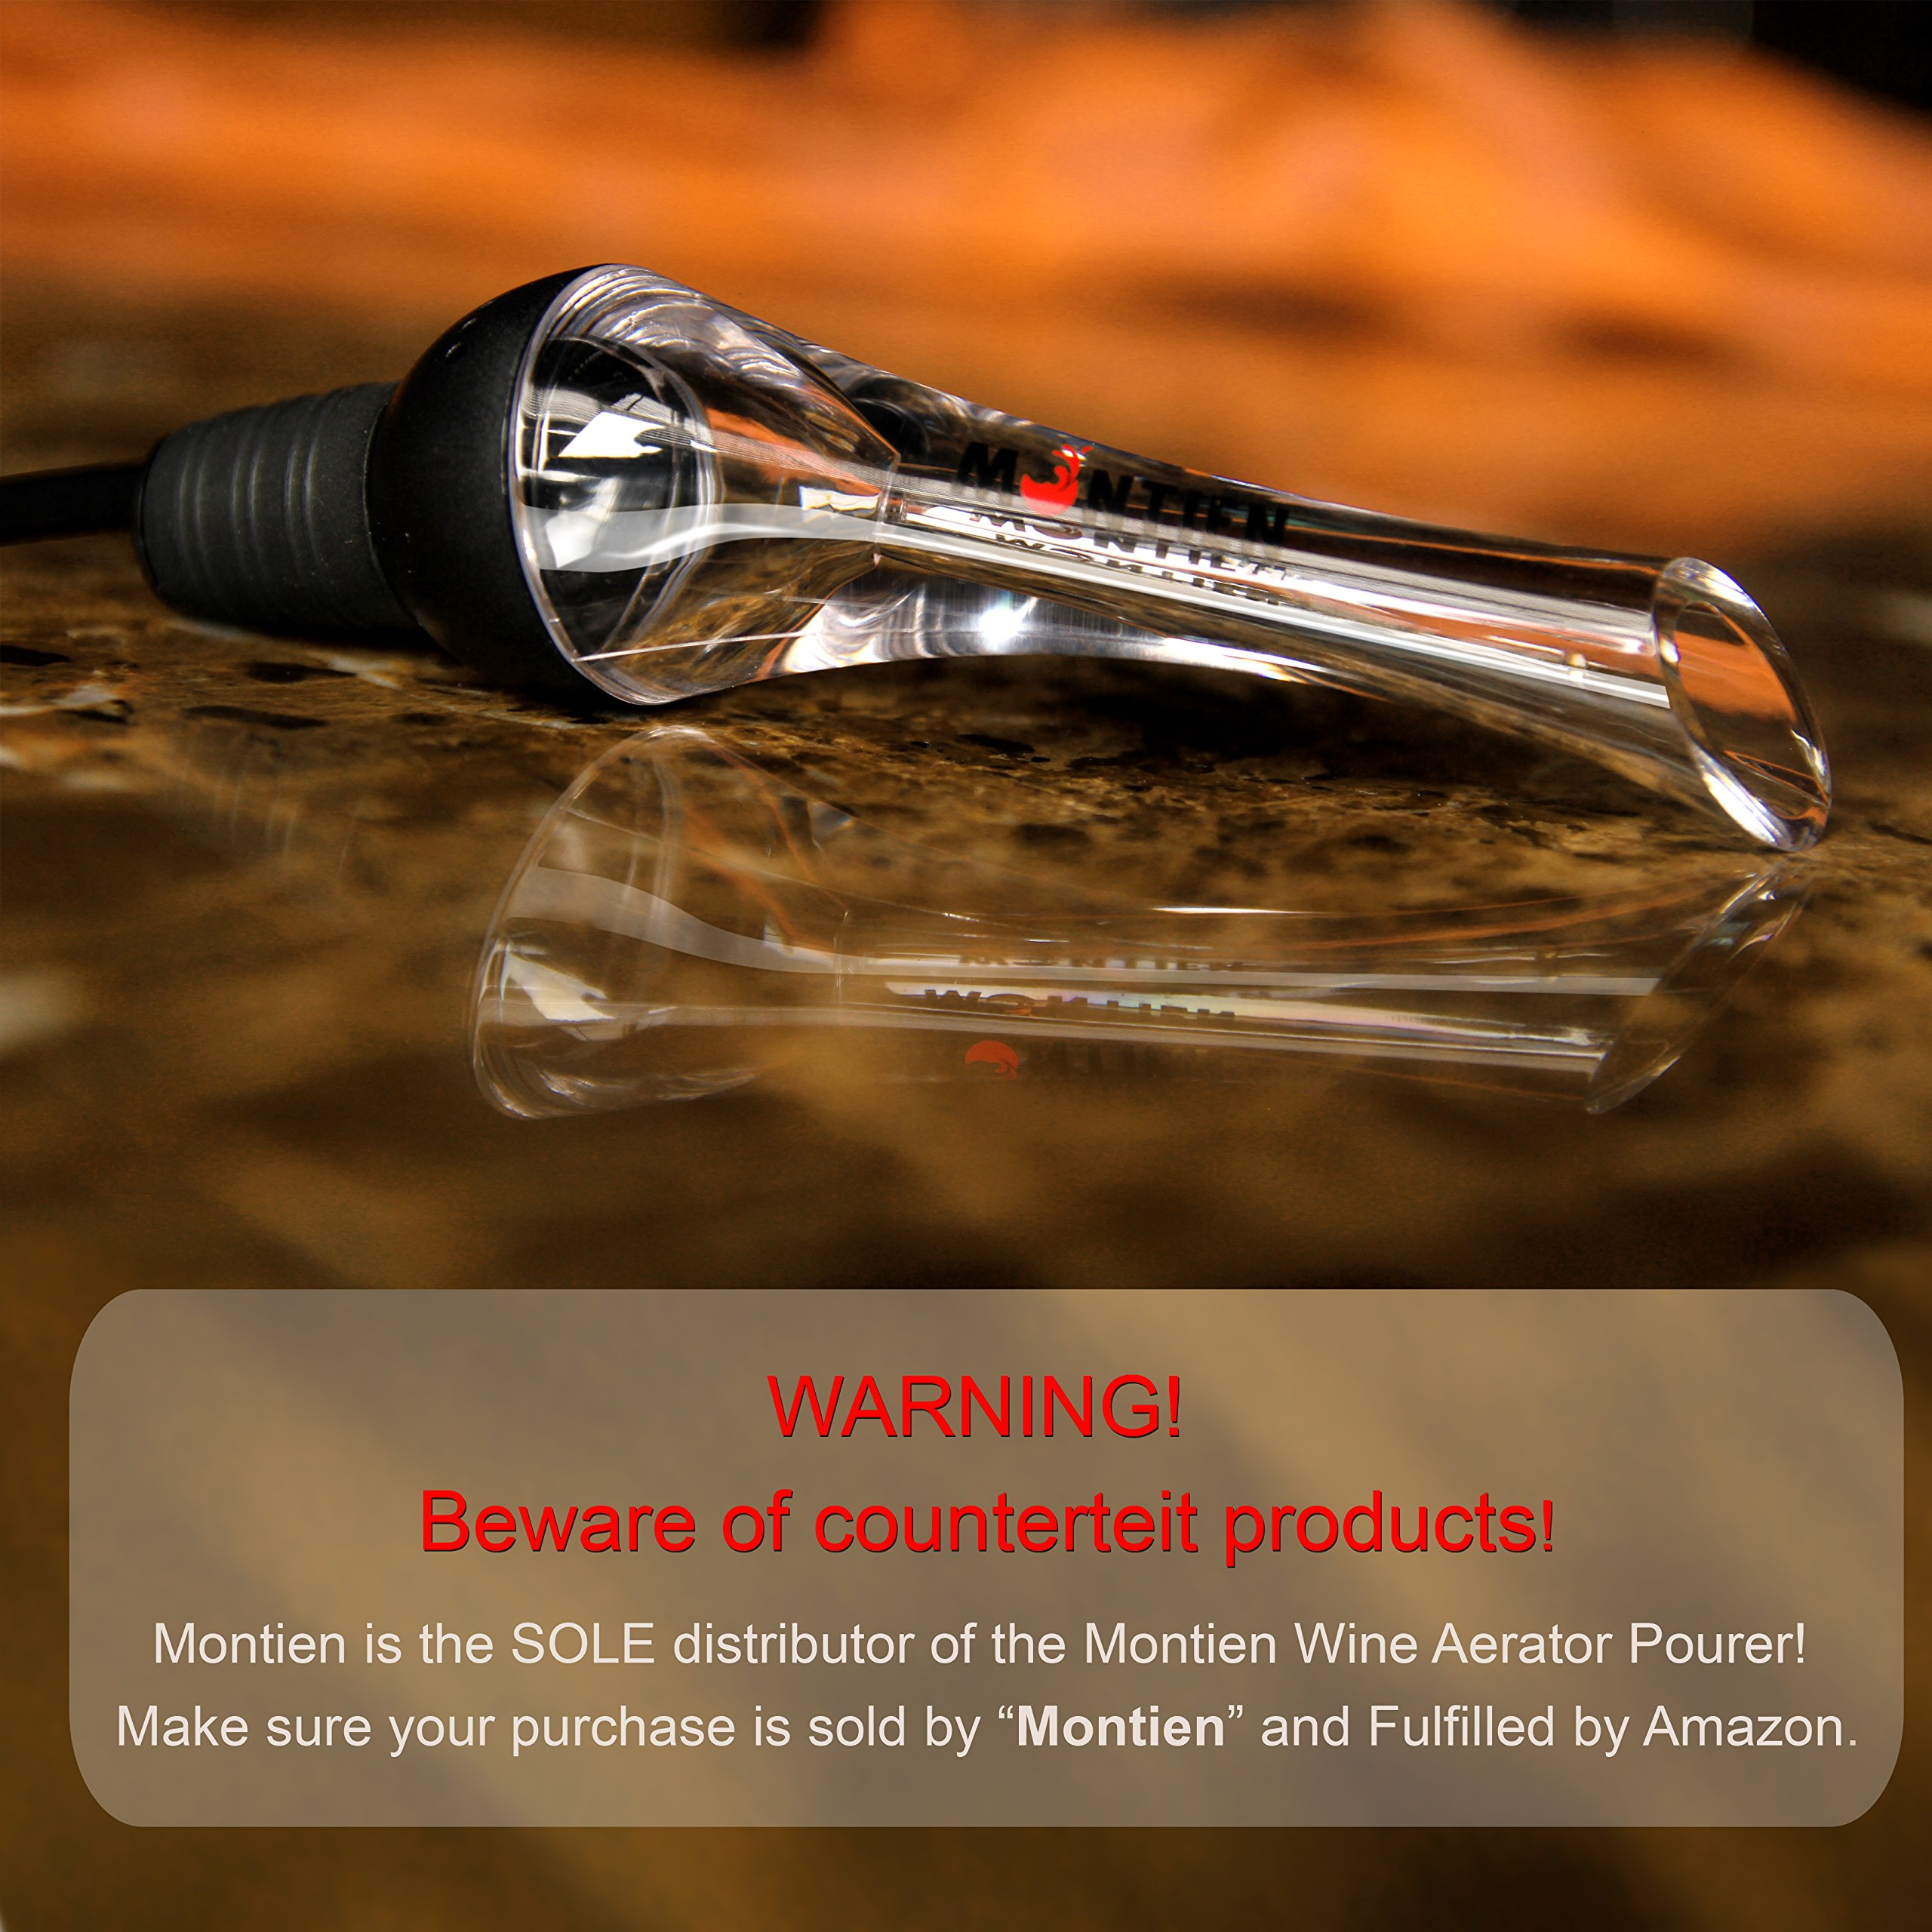 MonTien Wine Aerator Pourer - Premium Aerating Pourer - Exquisite & Best Wine Aerator Pourer Gift Set - Wine Accessories For Soiree With Decanter Spout - Wine Stopper Performer - Friendly Air Travel